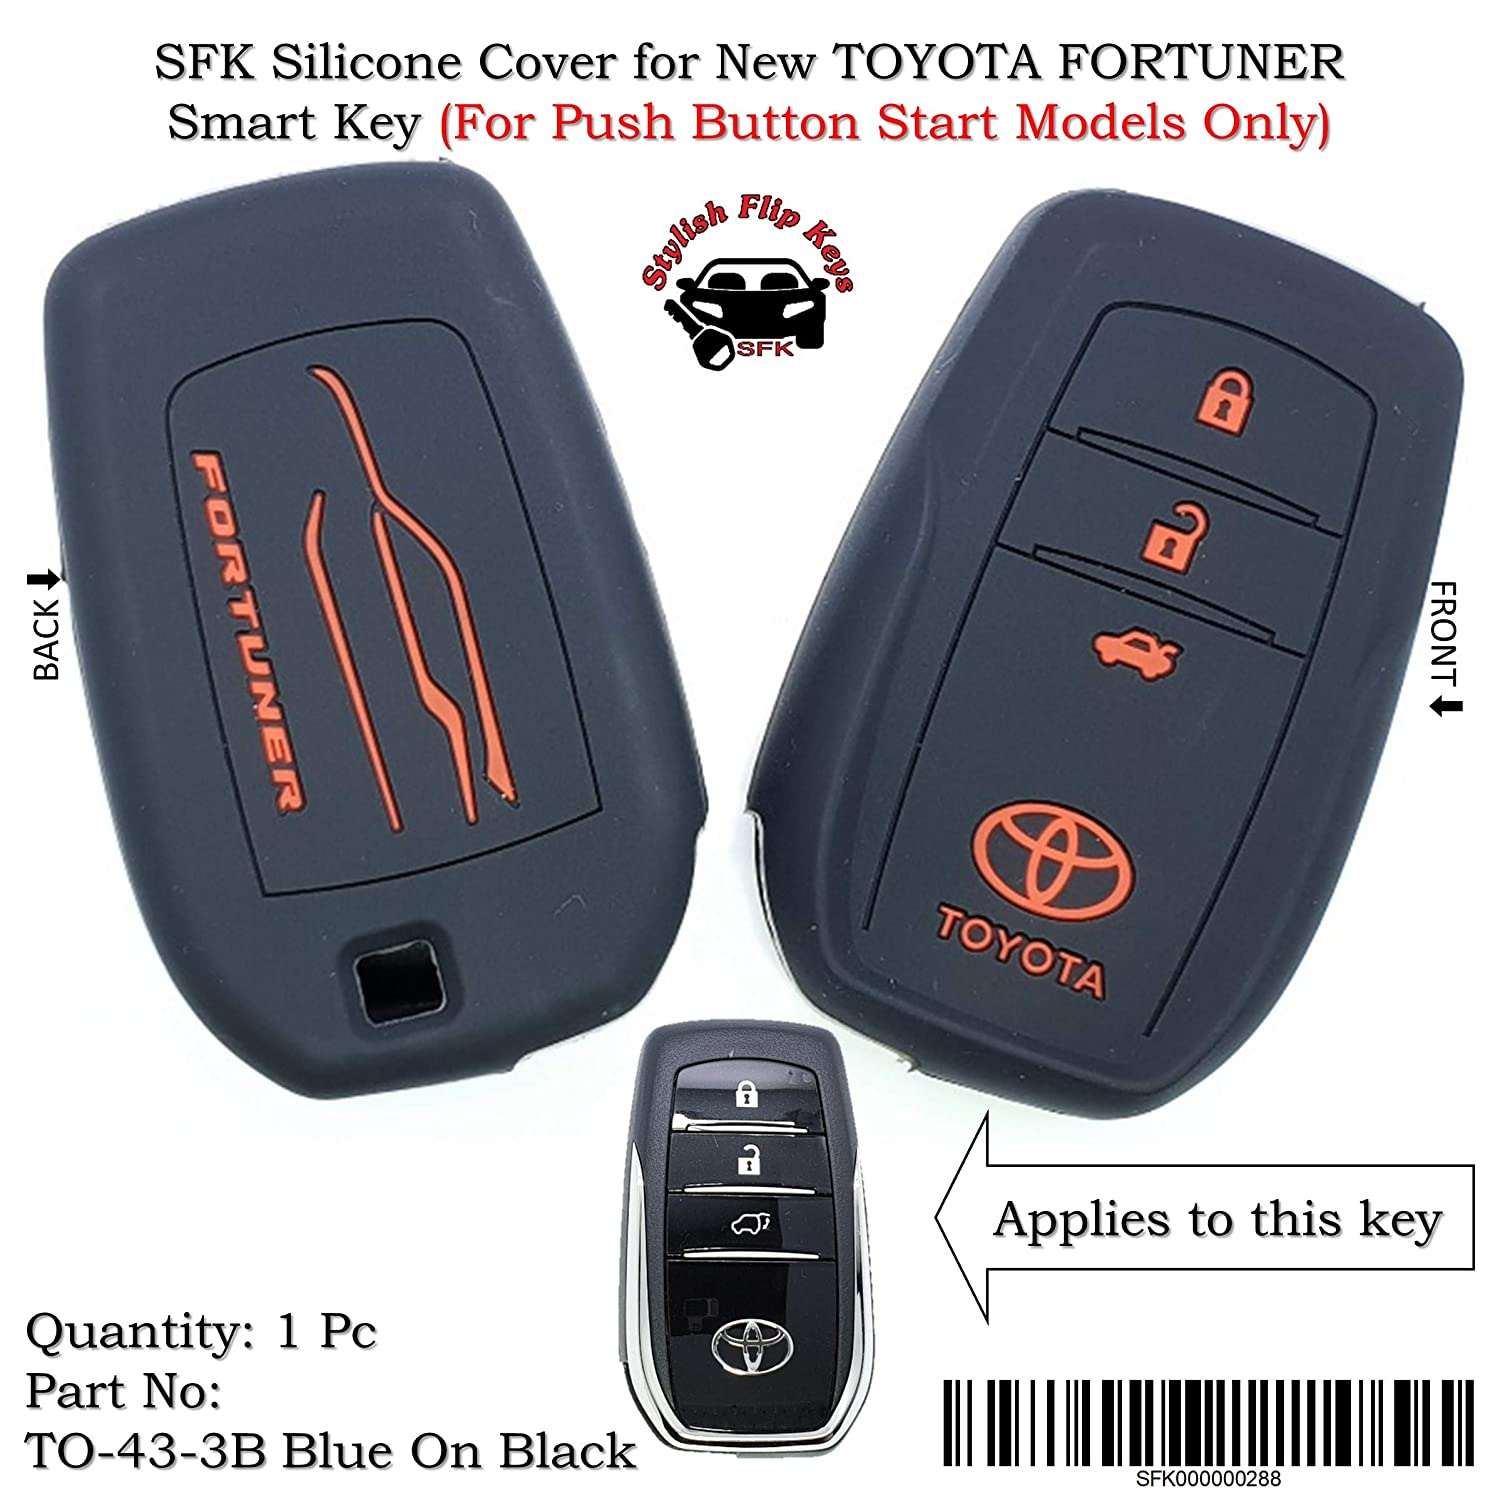 Sfk Silicone Key Cover For New Toyota Fortuner Push Button Kijang Innova 24 G A T Booking Fee Smart Only Car Motorbike